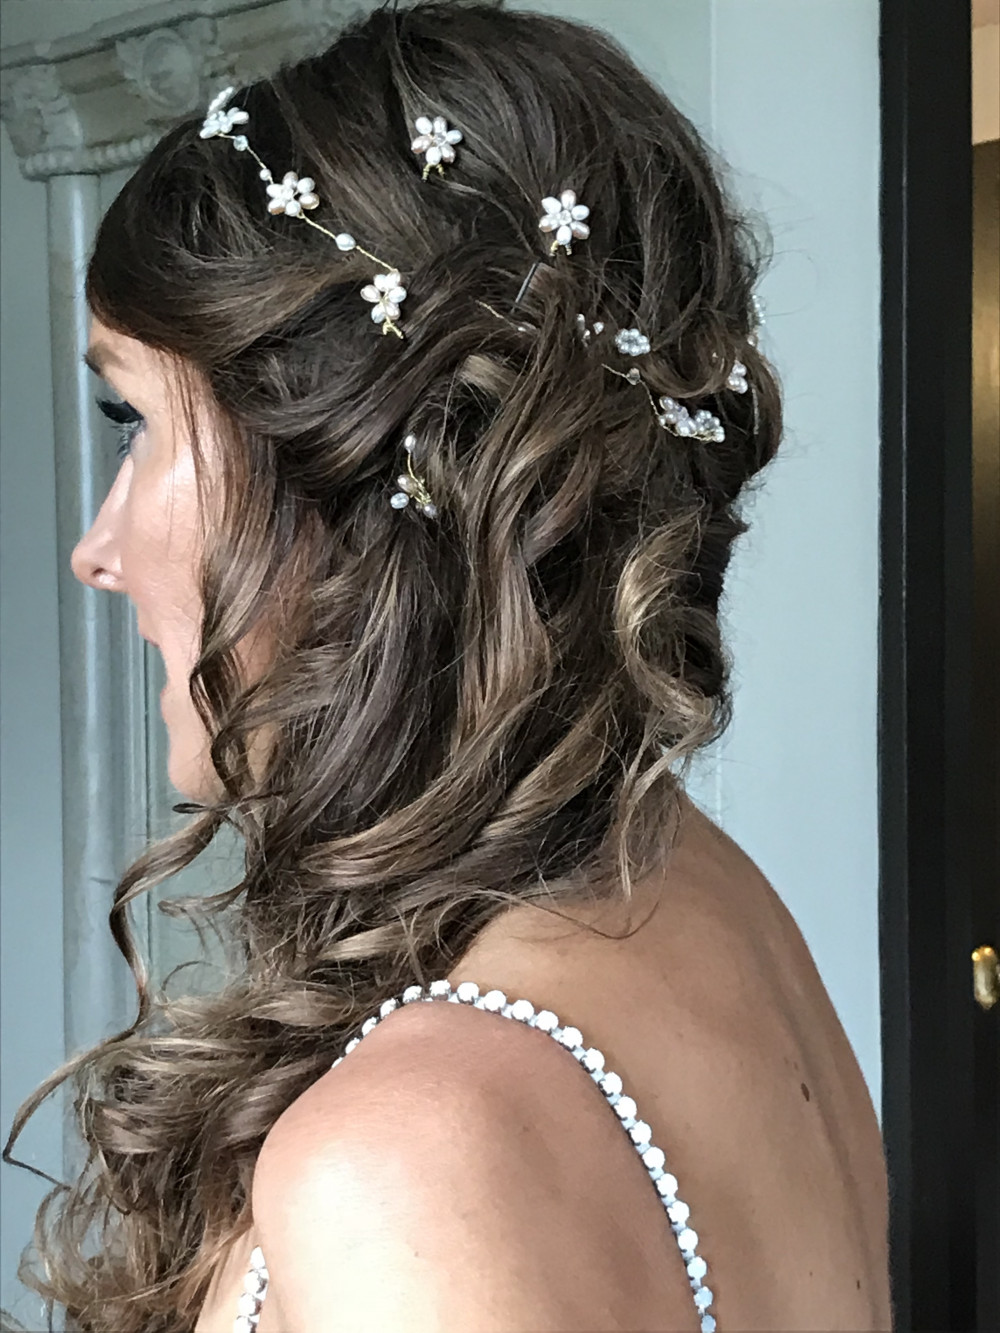 Gorgeous glossy looking half up half down do for this brunette. The hair vine really set off the look. - Make Me Bridal Artist: Barnet & Boatrace. Photography by: Barnet & Boatrace own. #hairvine #brunette #halfuphalfdown